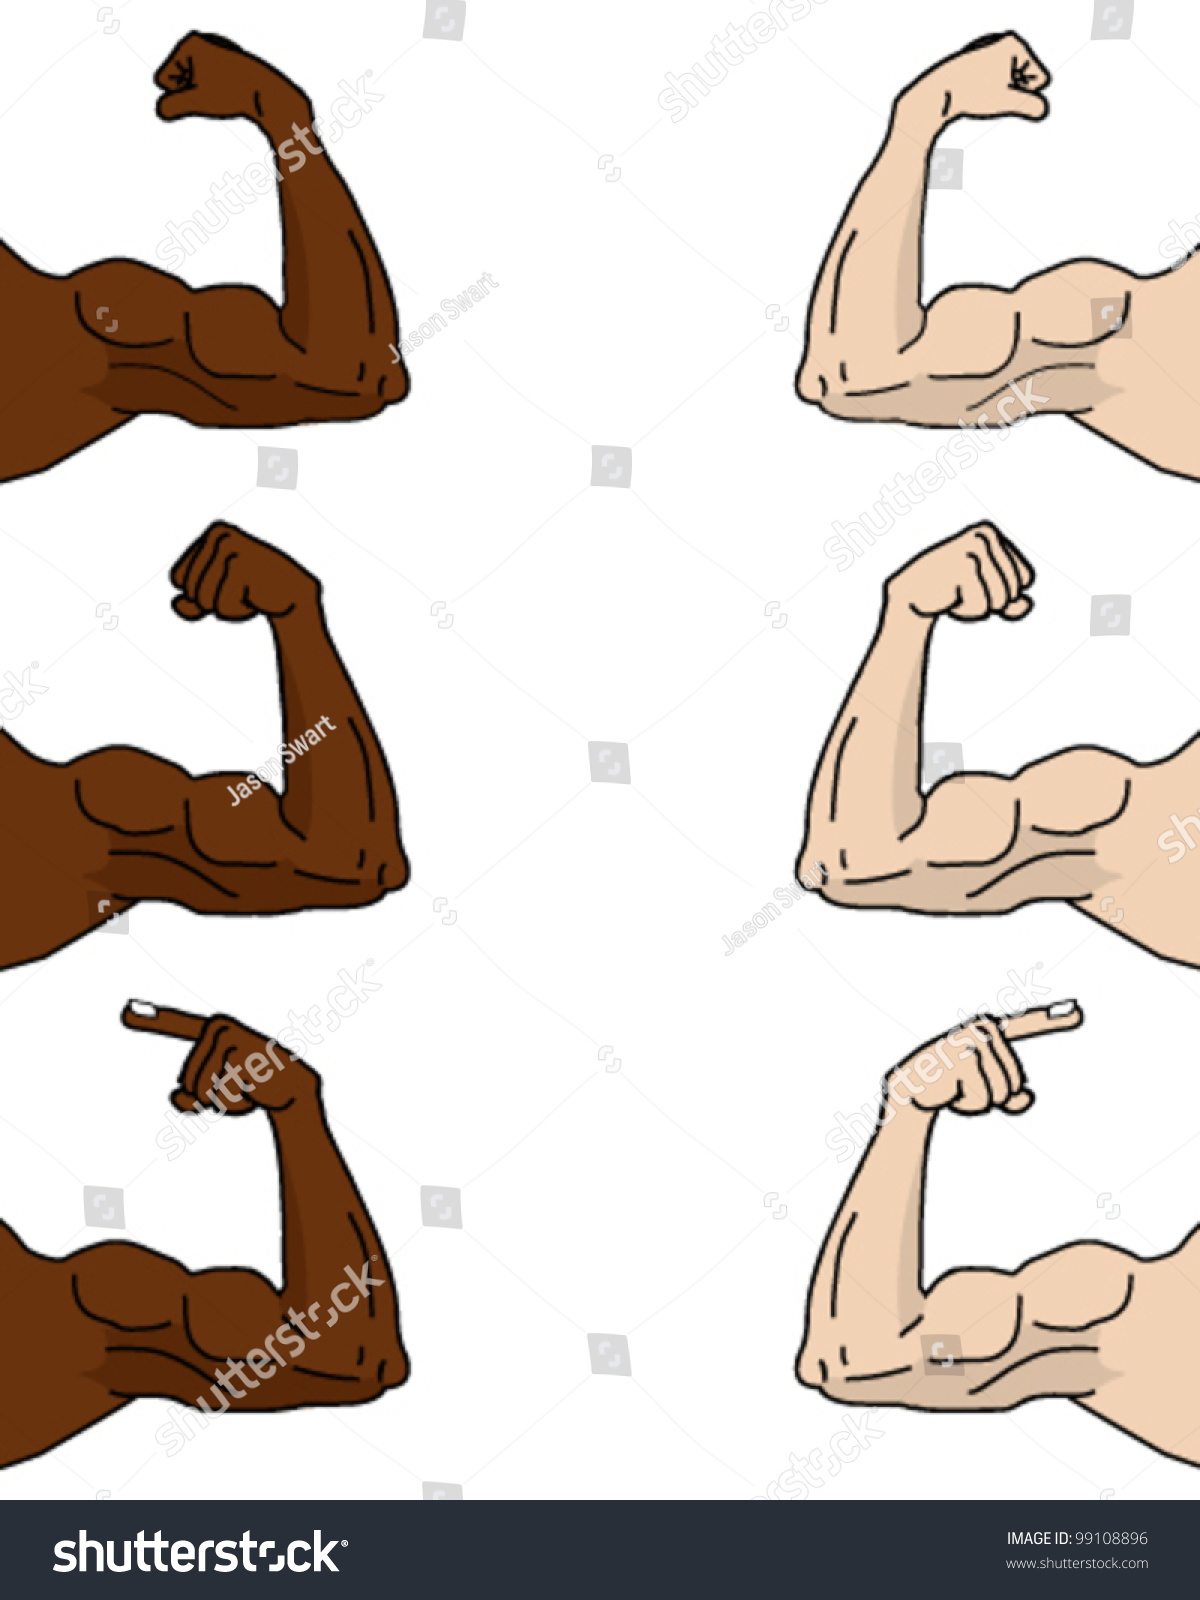 muscular cartoon arms different positions stock vector